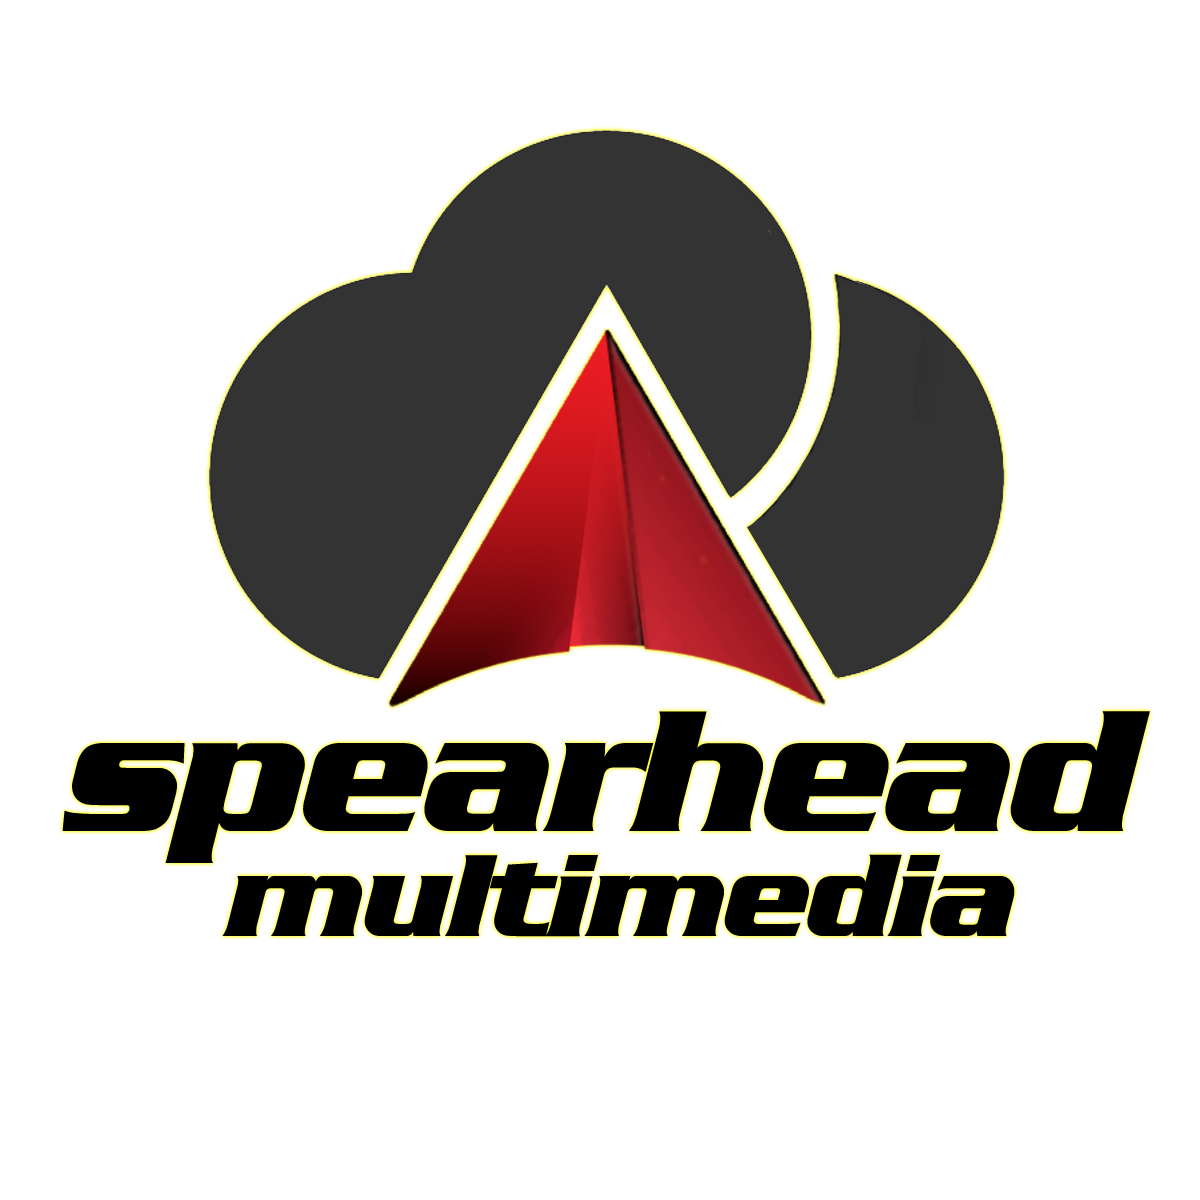 Spearhead Multimedia - Website design and hosting.